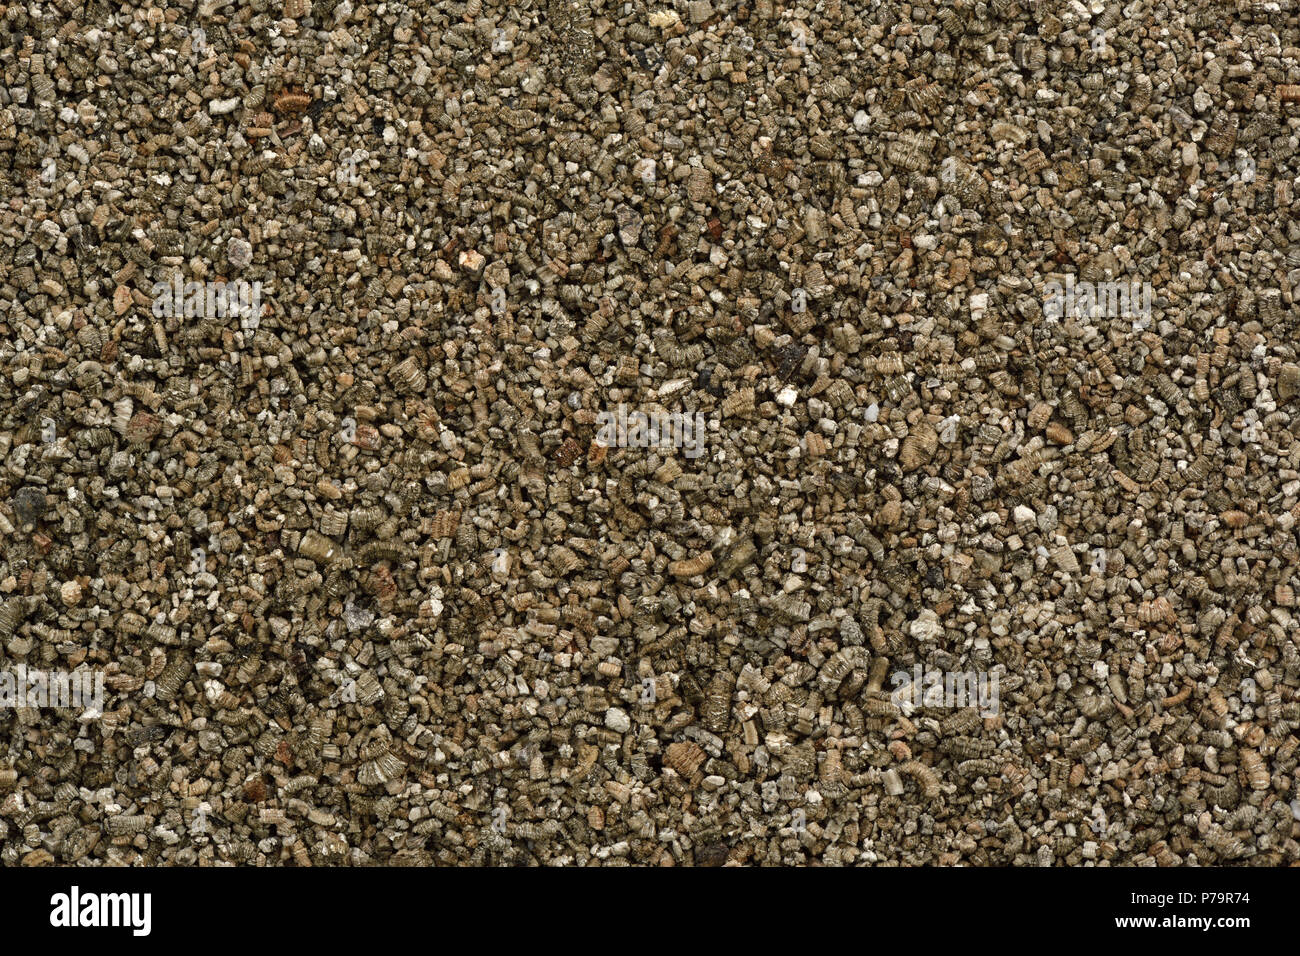 Vermiculite particles, soil amendment mineral used in horticulture and gardening. Closeup texture background - Stock Image